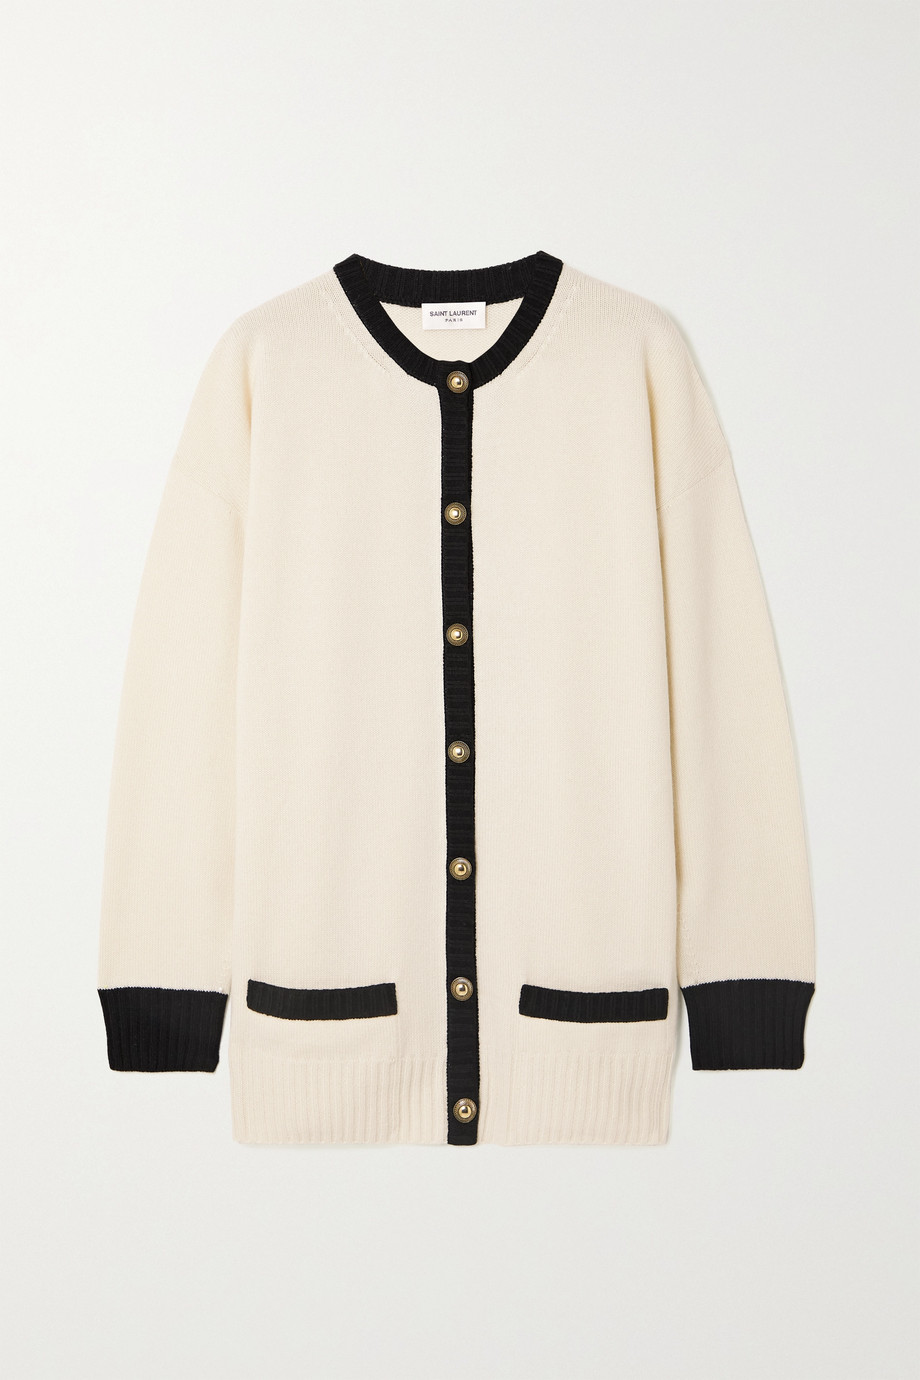 SAINT LAURENT Cashmere cardigan